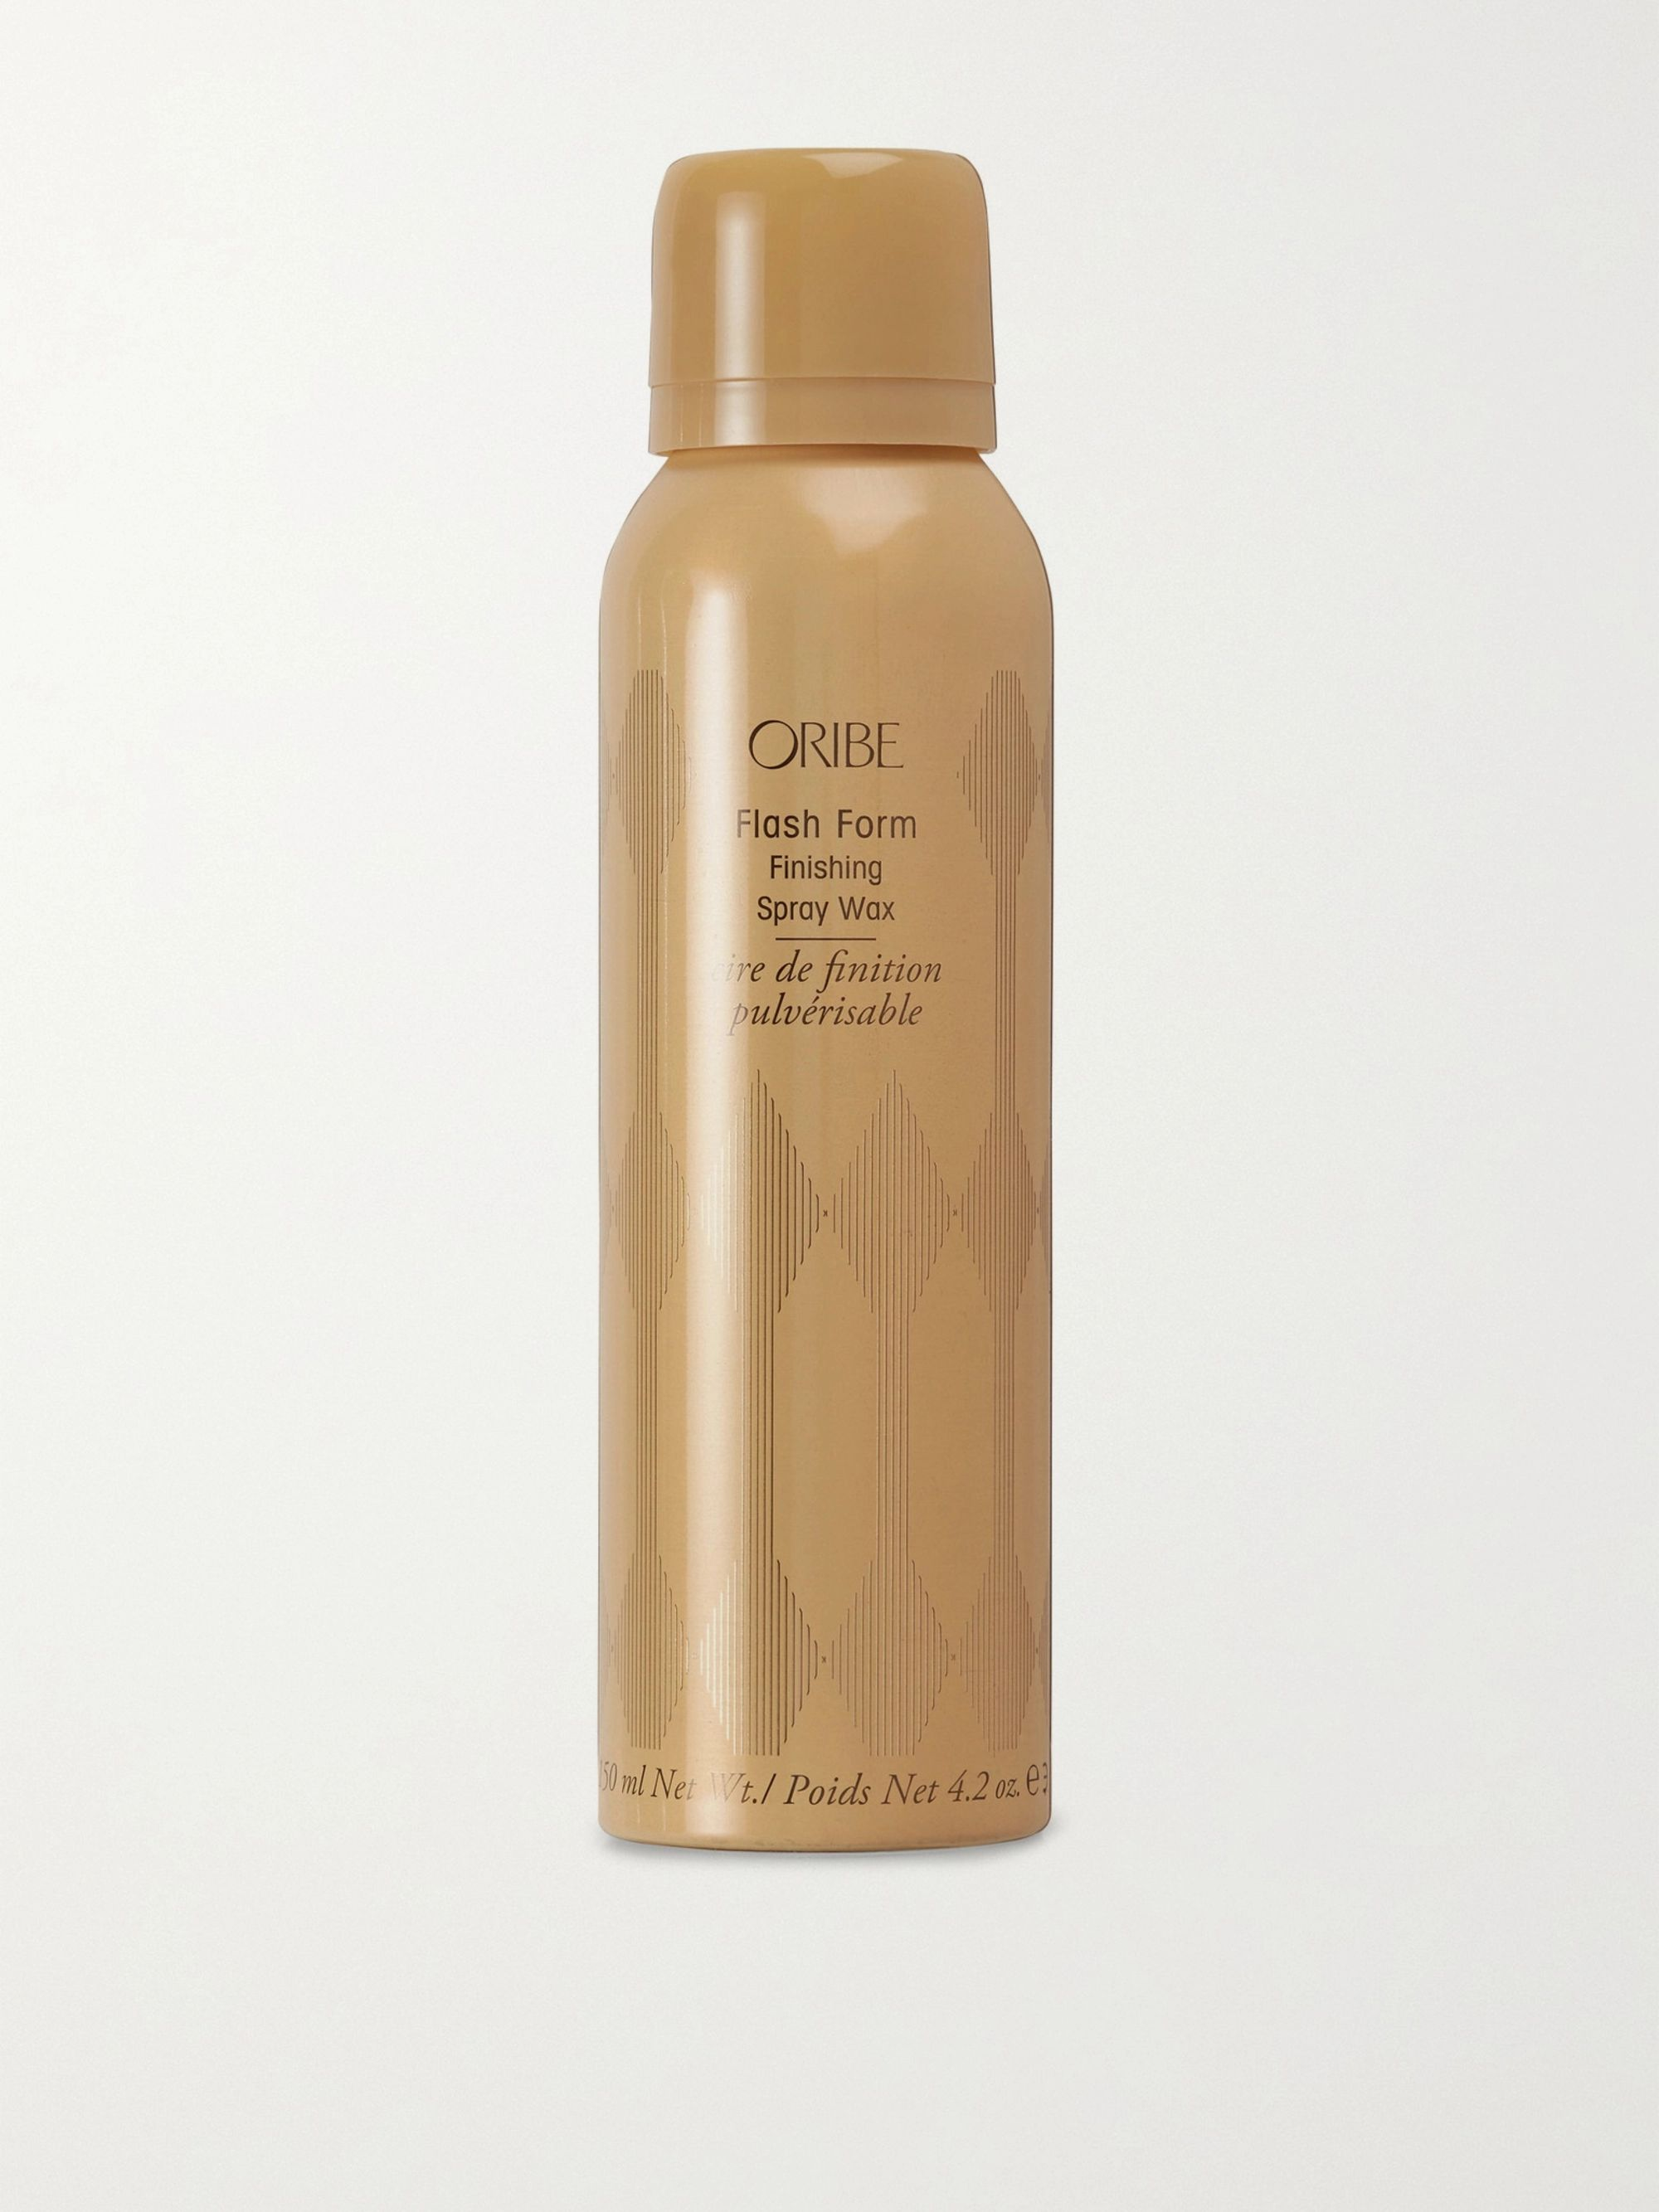 Oribe Flash Form Finishing Spray Wax, 150ml